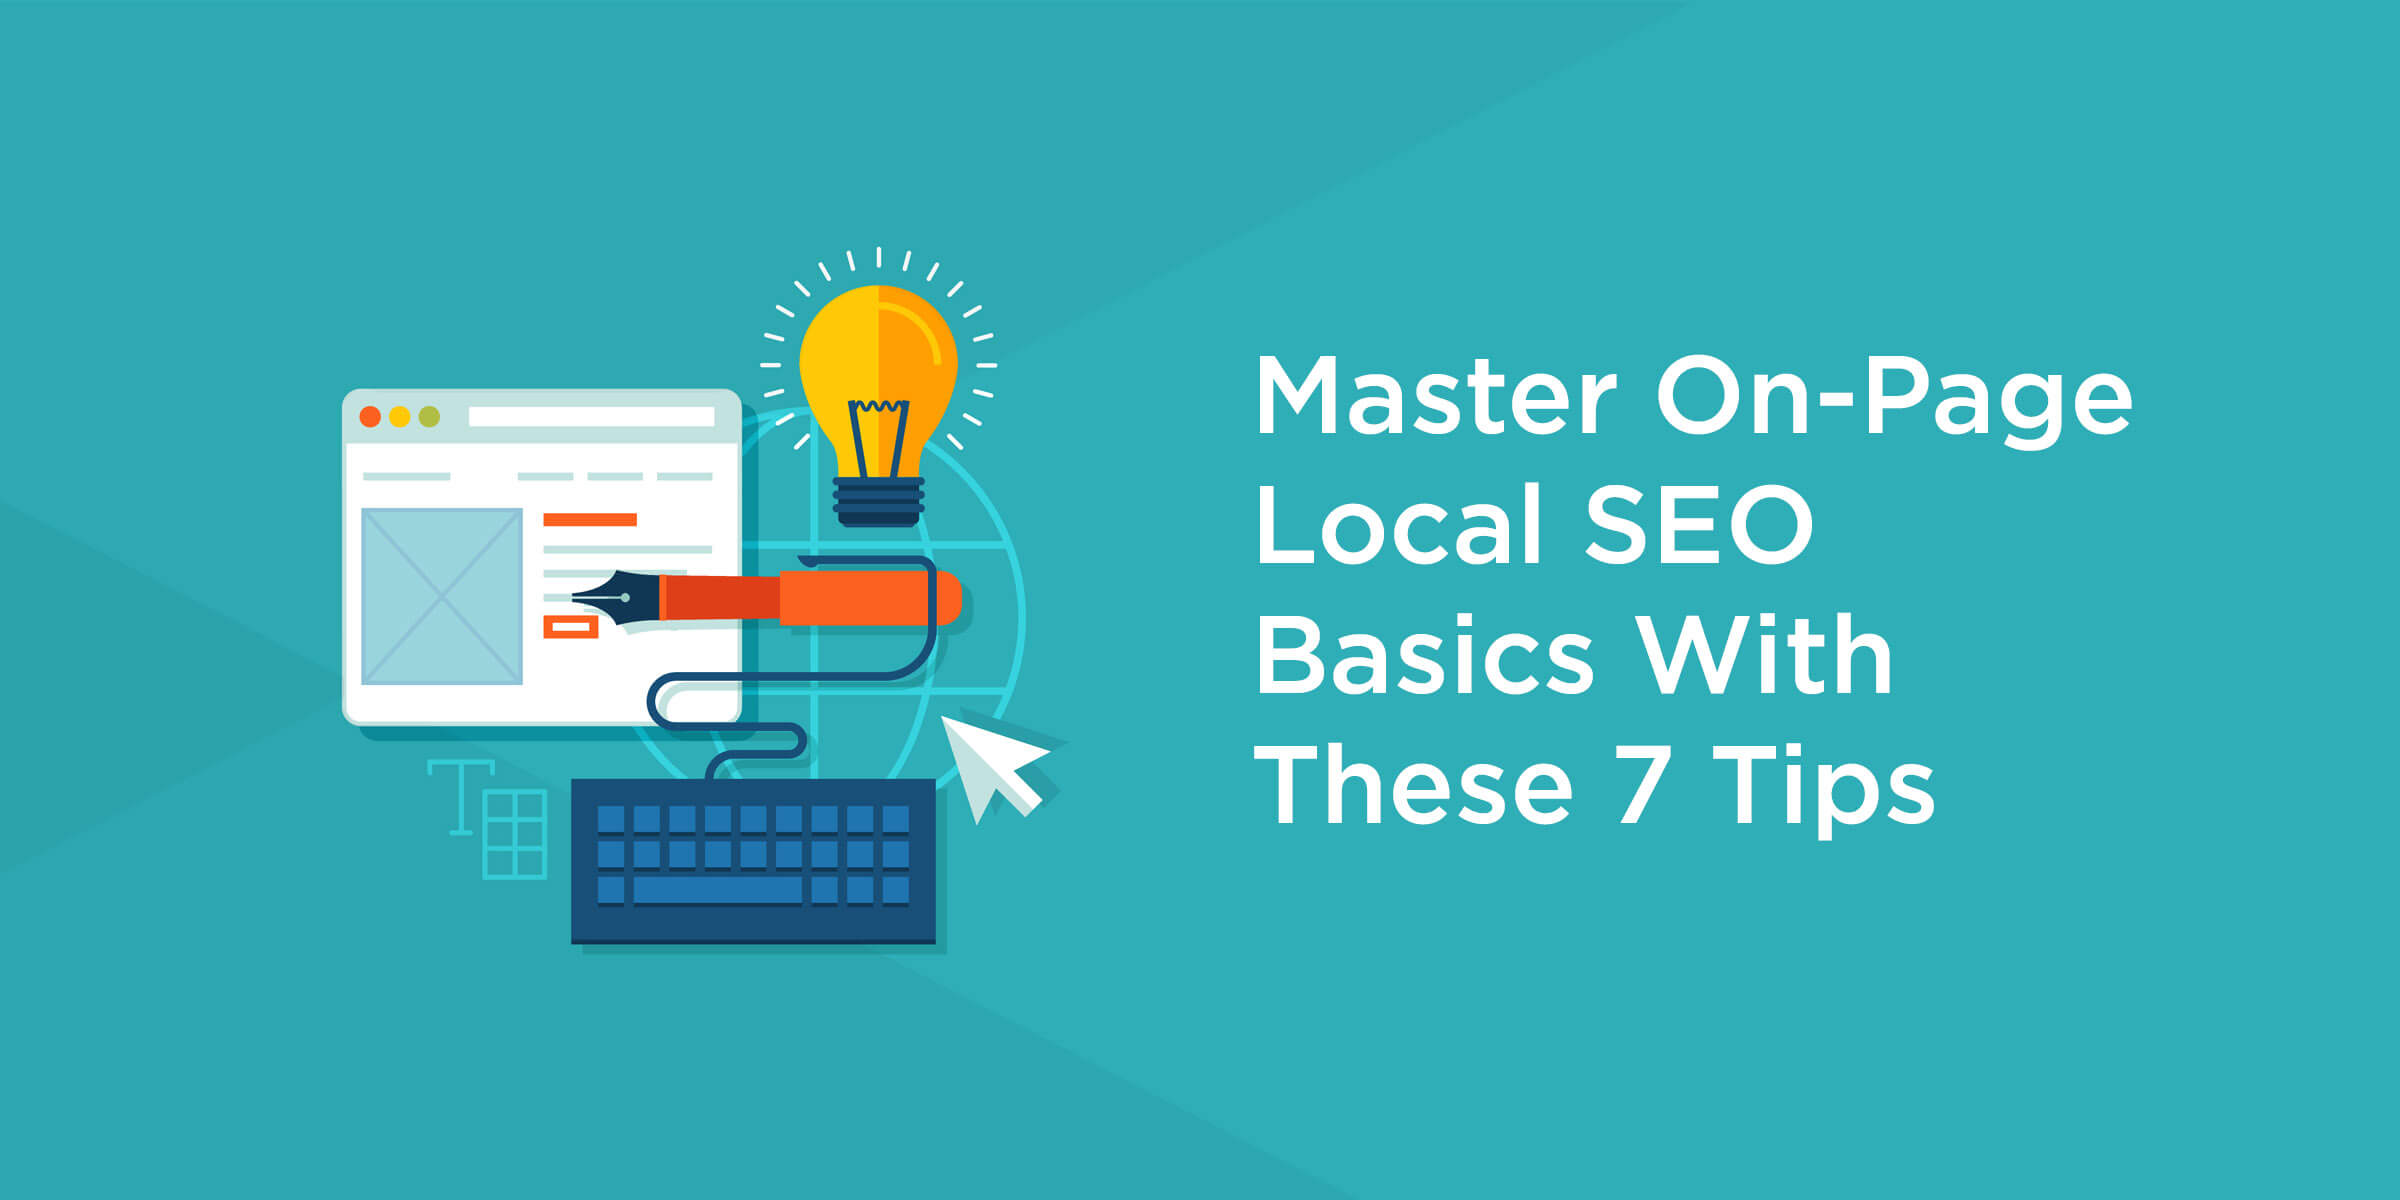 Master On-Page Local SEO Basics With These 7 Tips – McBreen Marketing Fort Collins, CO